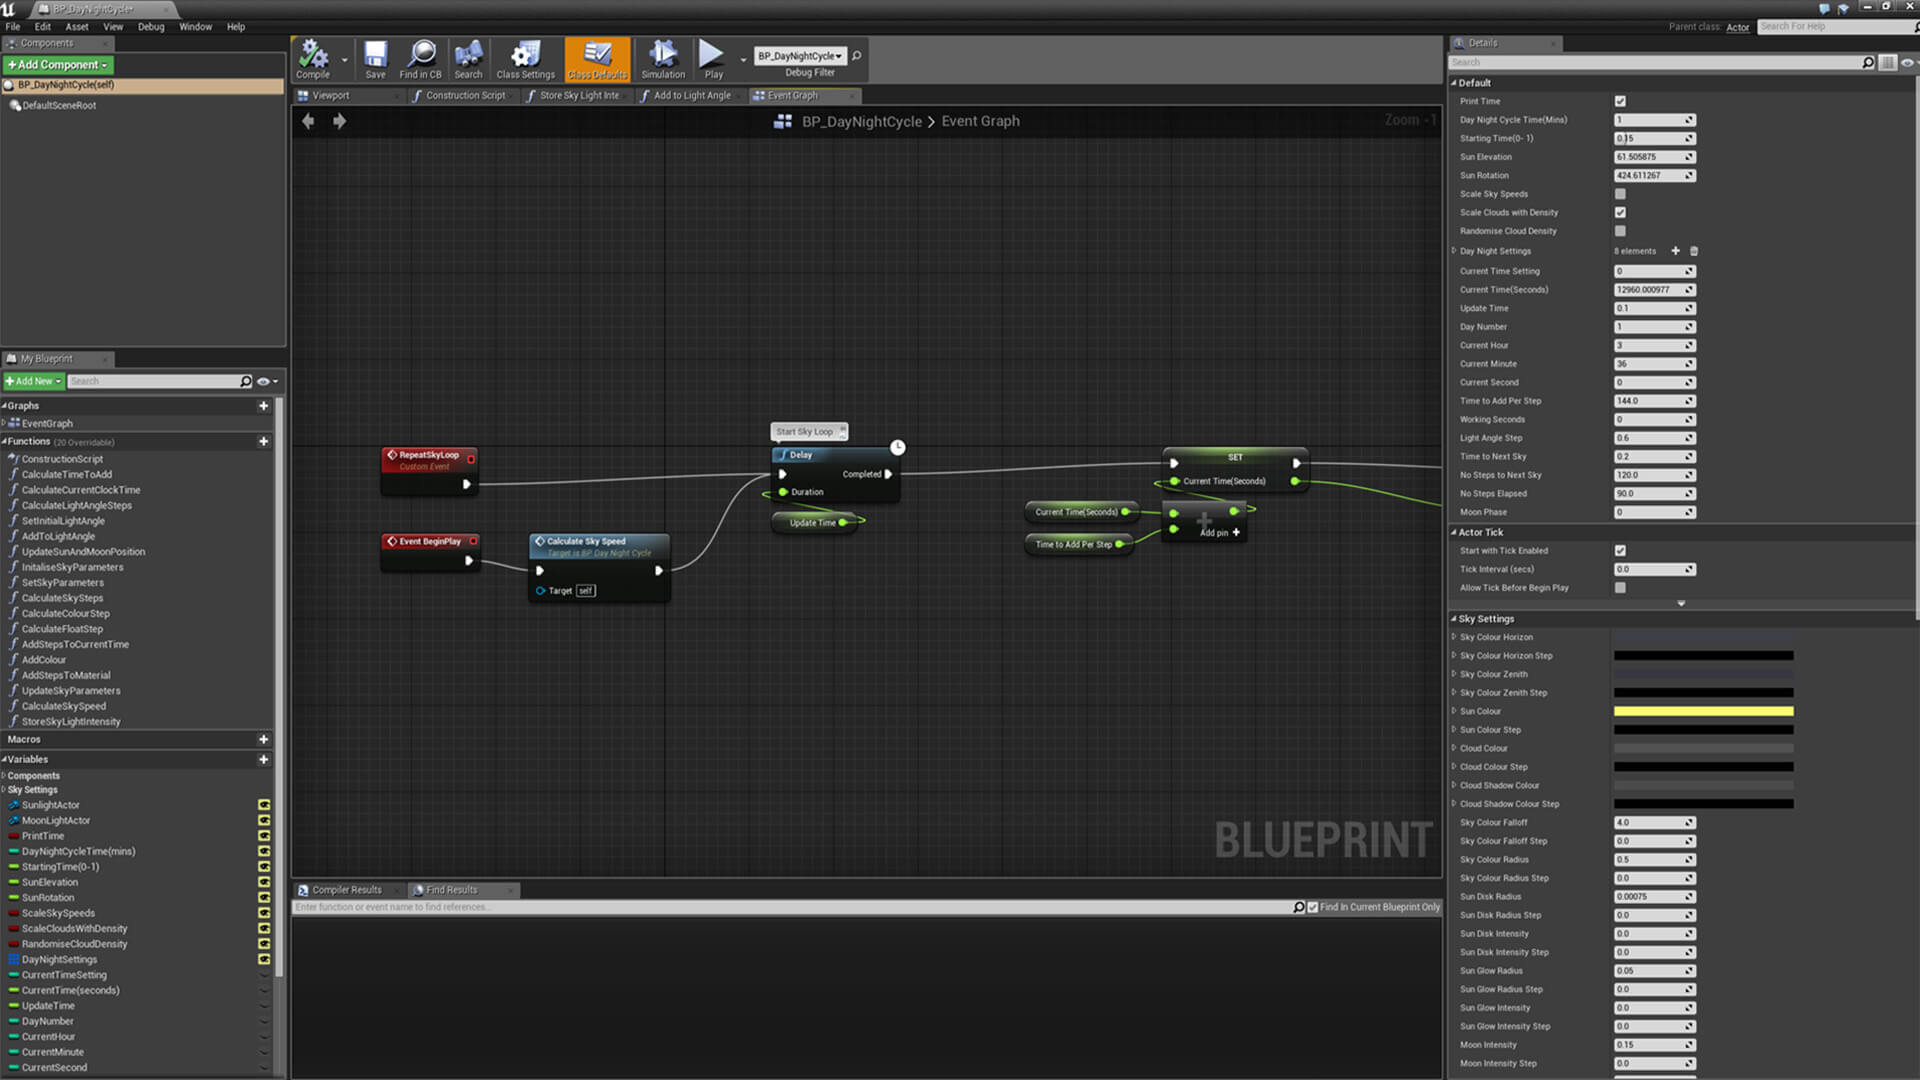 blueprint driven day night cycle by tharlevfx in blueprints ue4 blueprint driven day night cycle by tharlevfx in blueprints ue4 marketplace